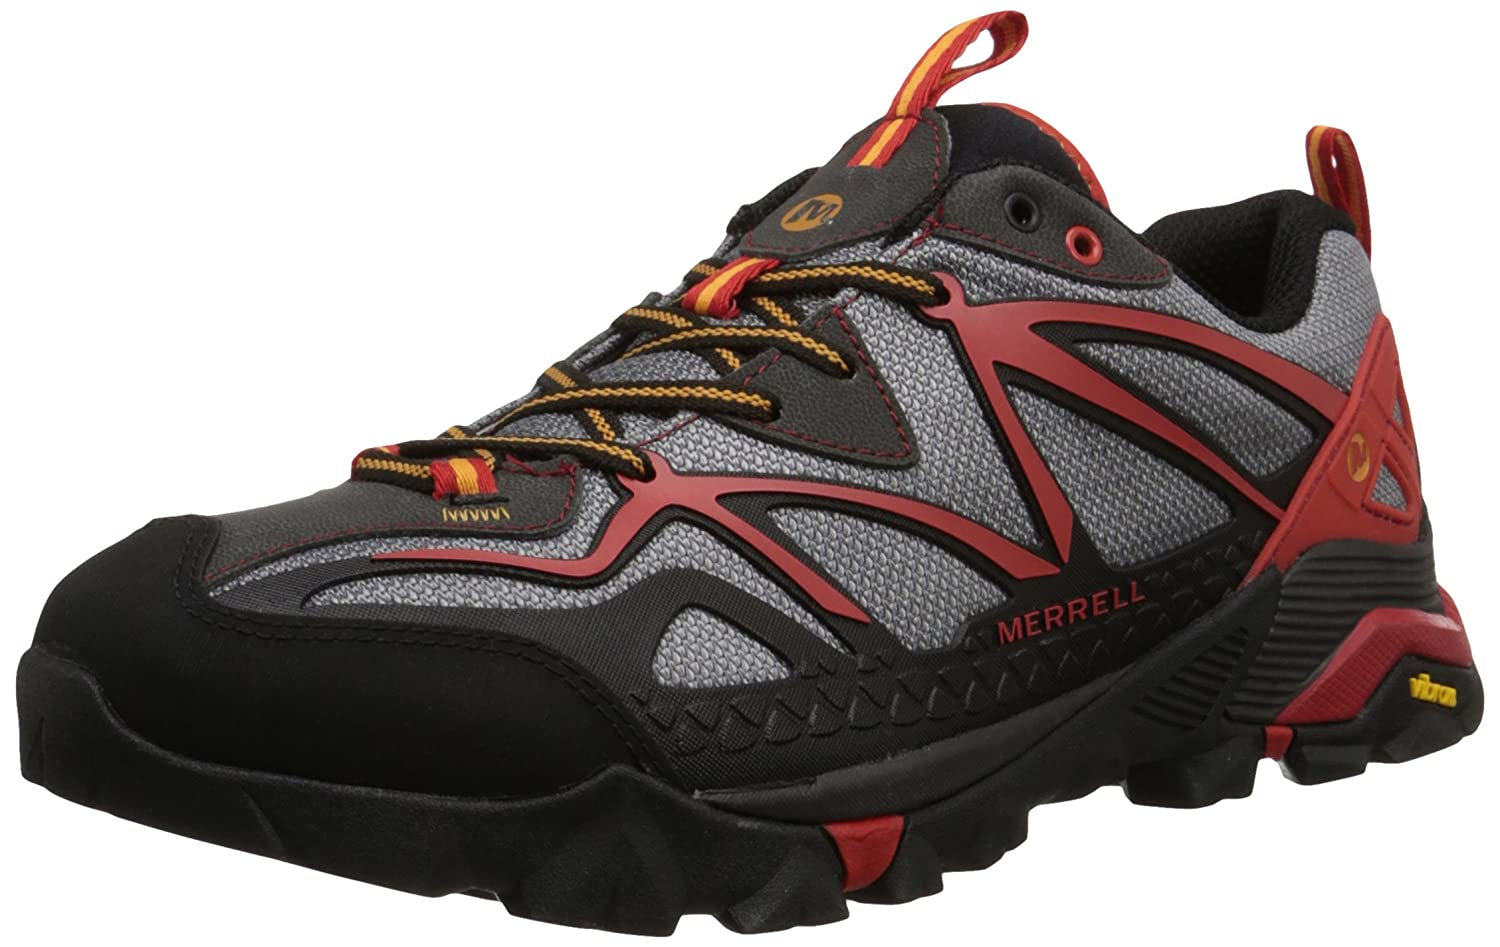 Merrell Men's Capra Sport Hiking Shoes J65051